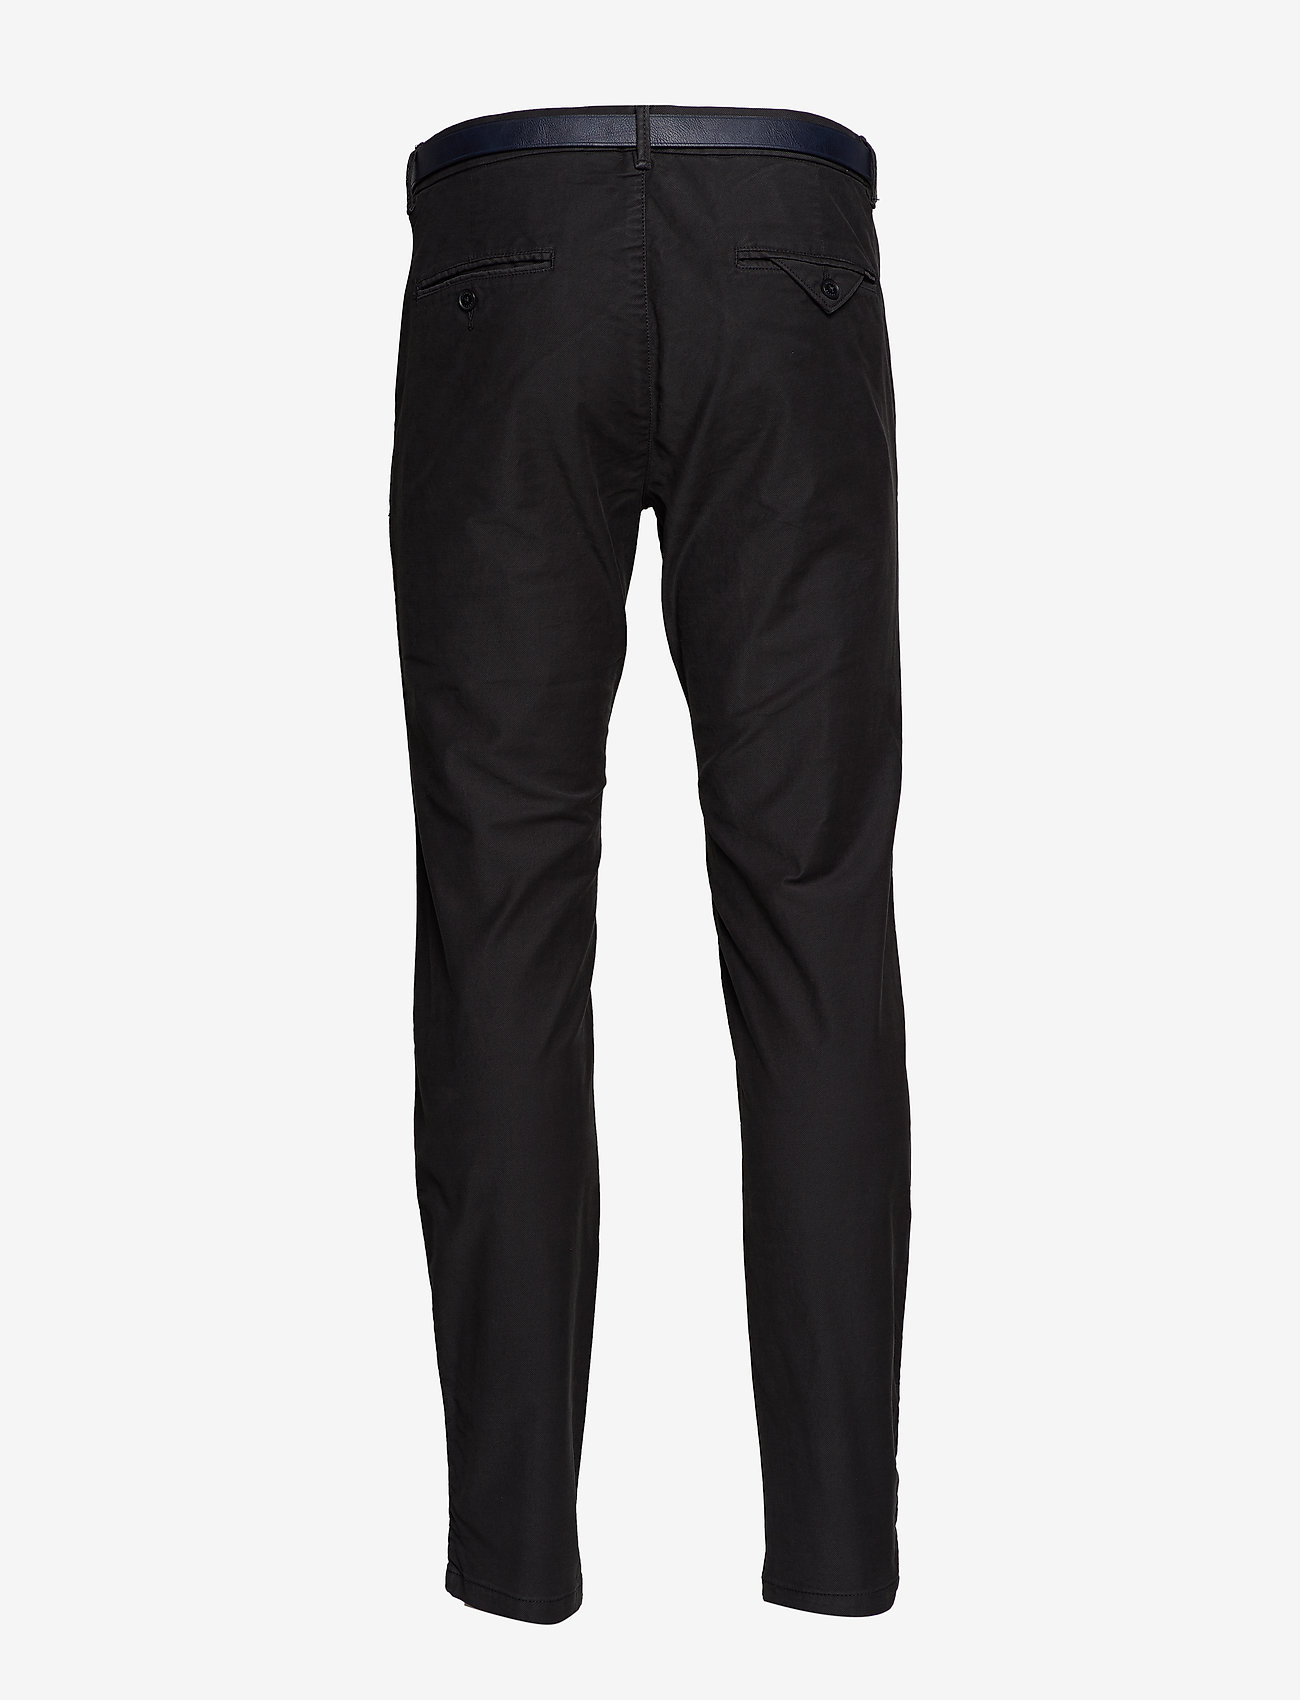 Scotch & Soda - STUART - Classic garment-dyed twill chino - charcoal - 1